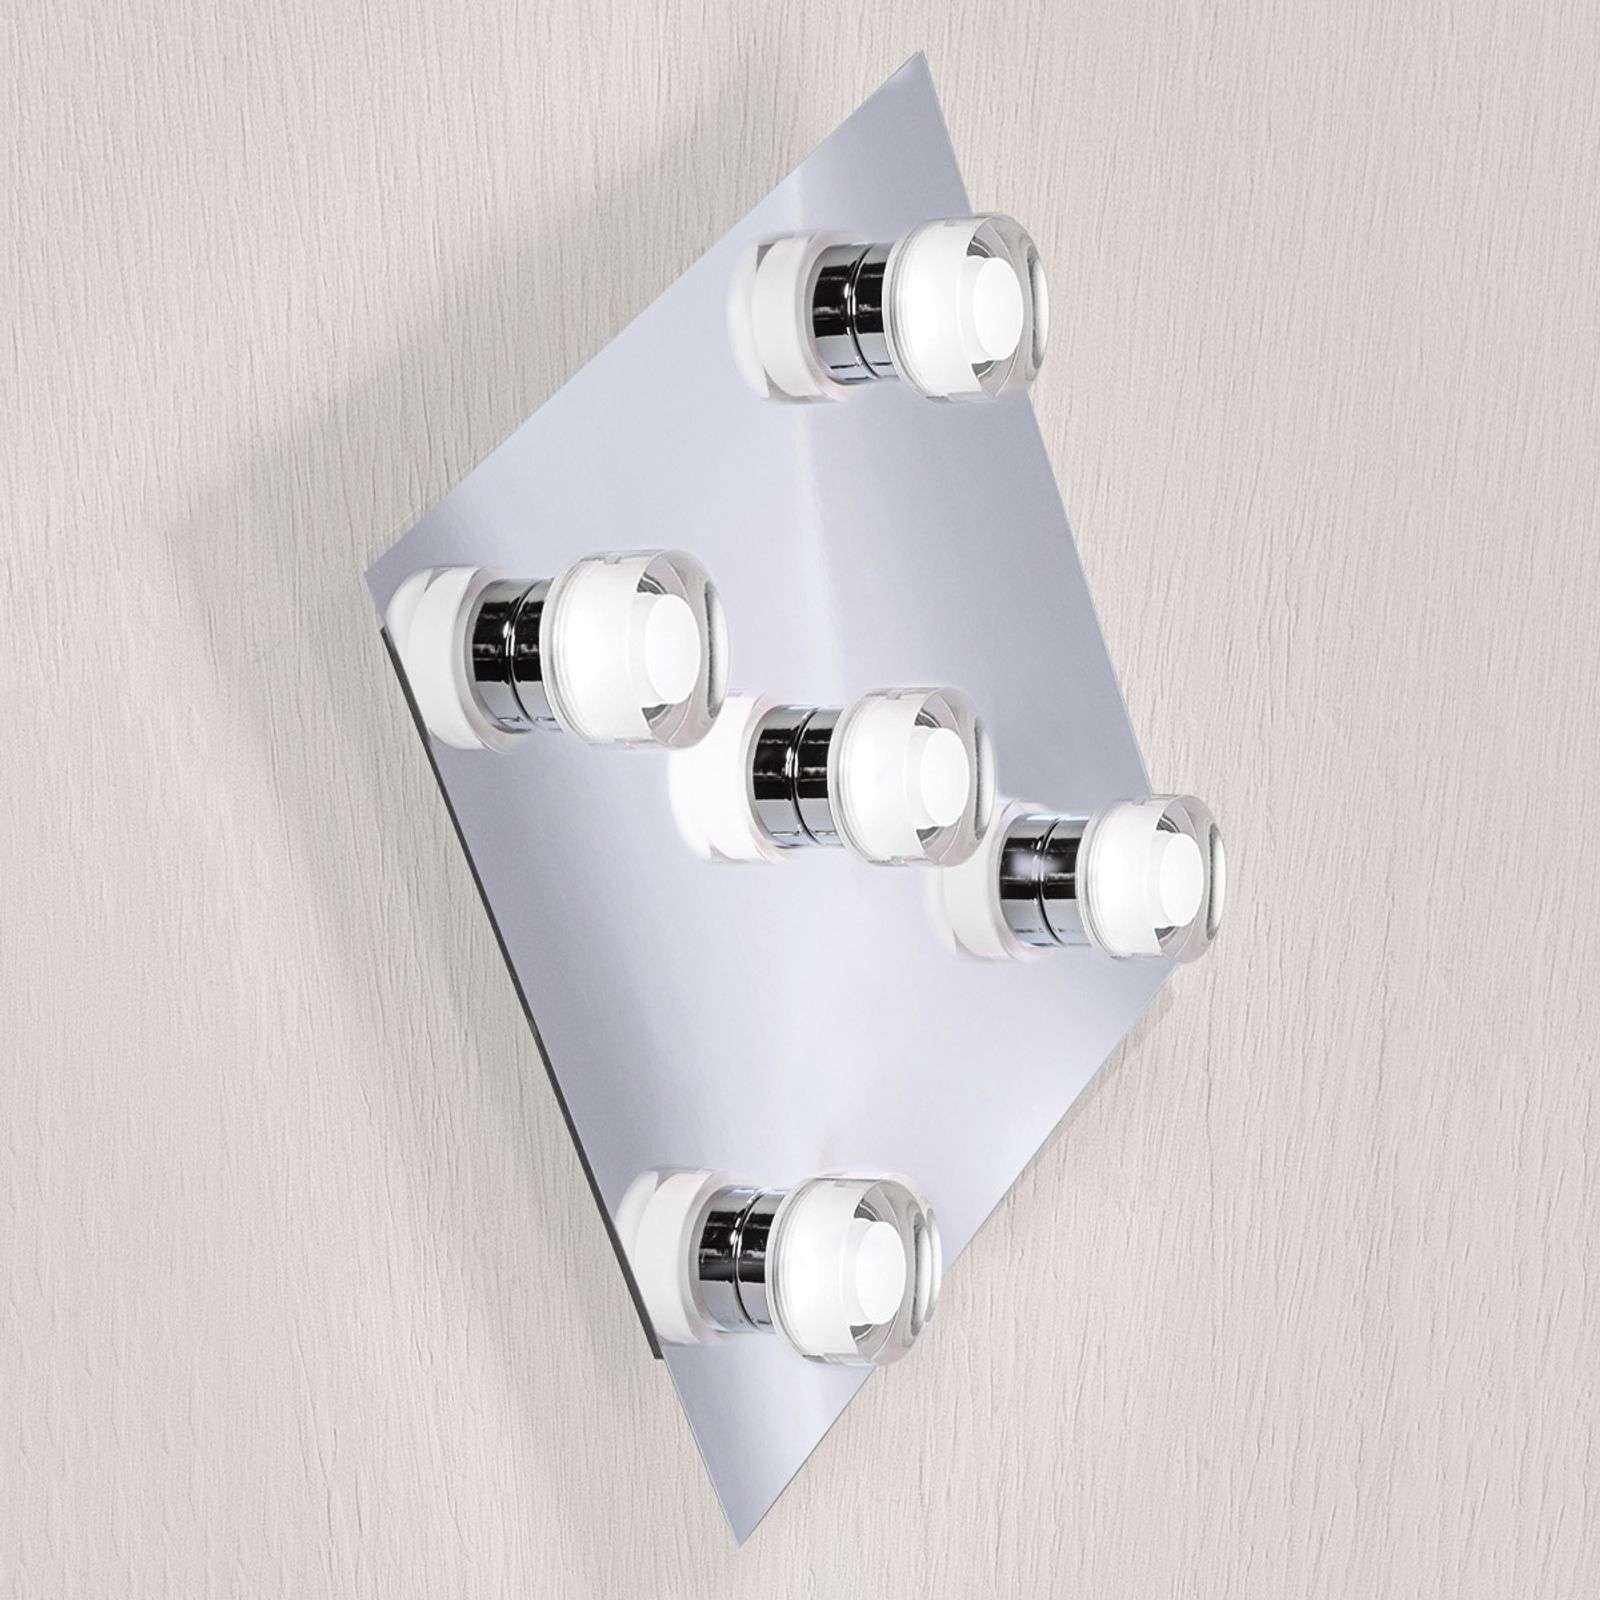 Lámpara de pared LED Gilian cuadrangular, 5 focos